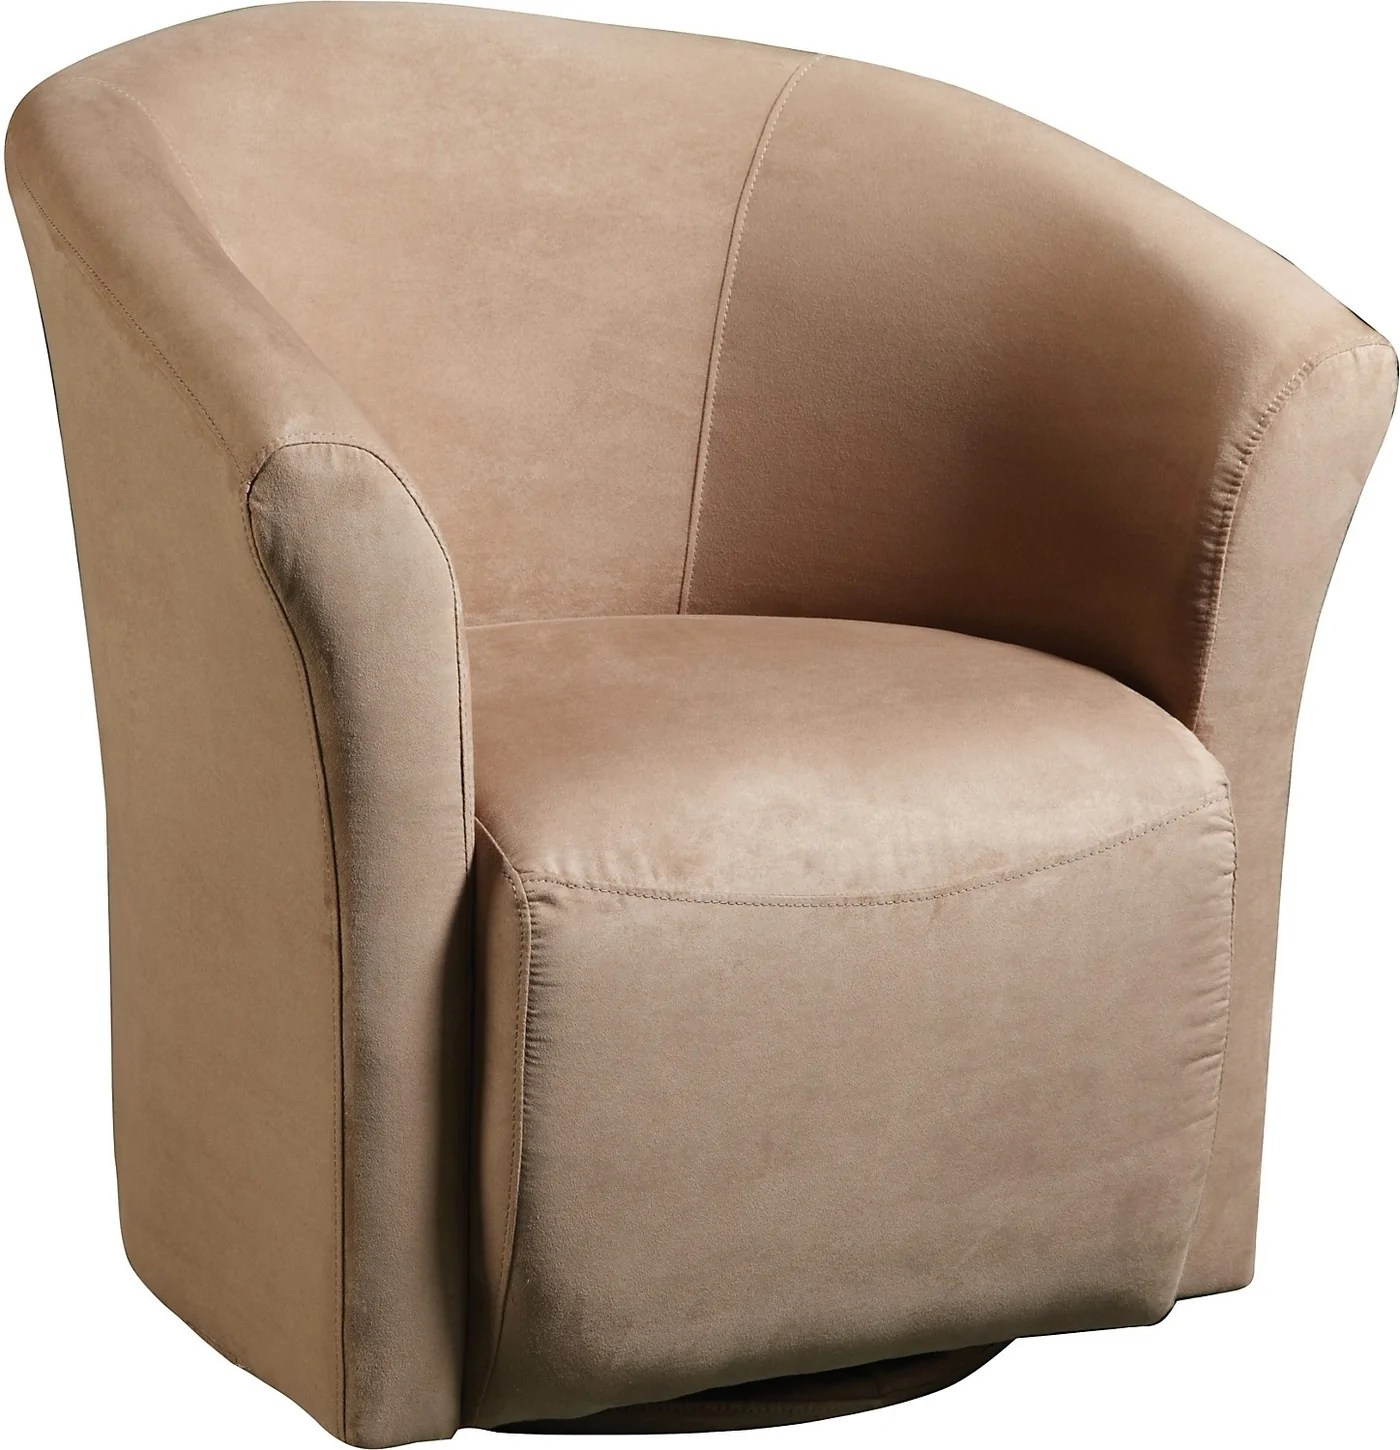 Swivel Tub Chair Mocha Microfibre Swivel Tub Chair